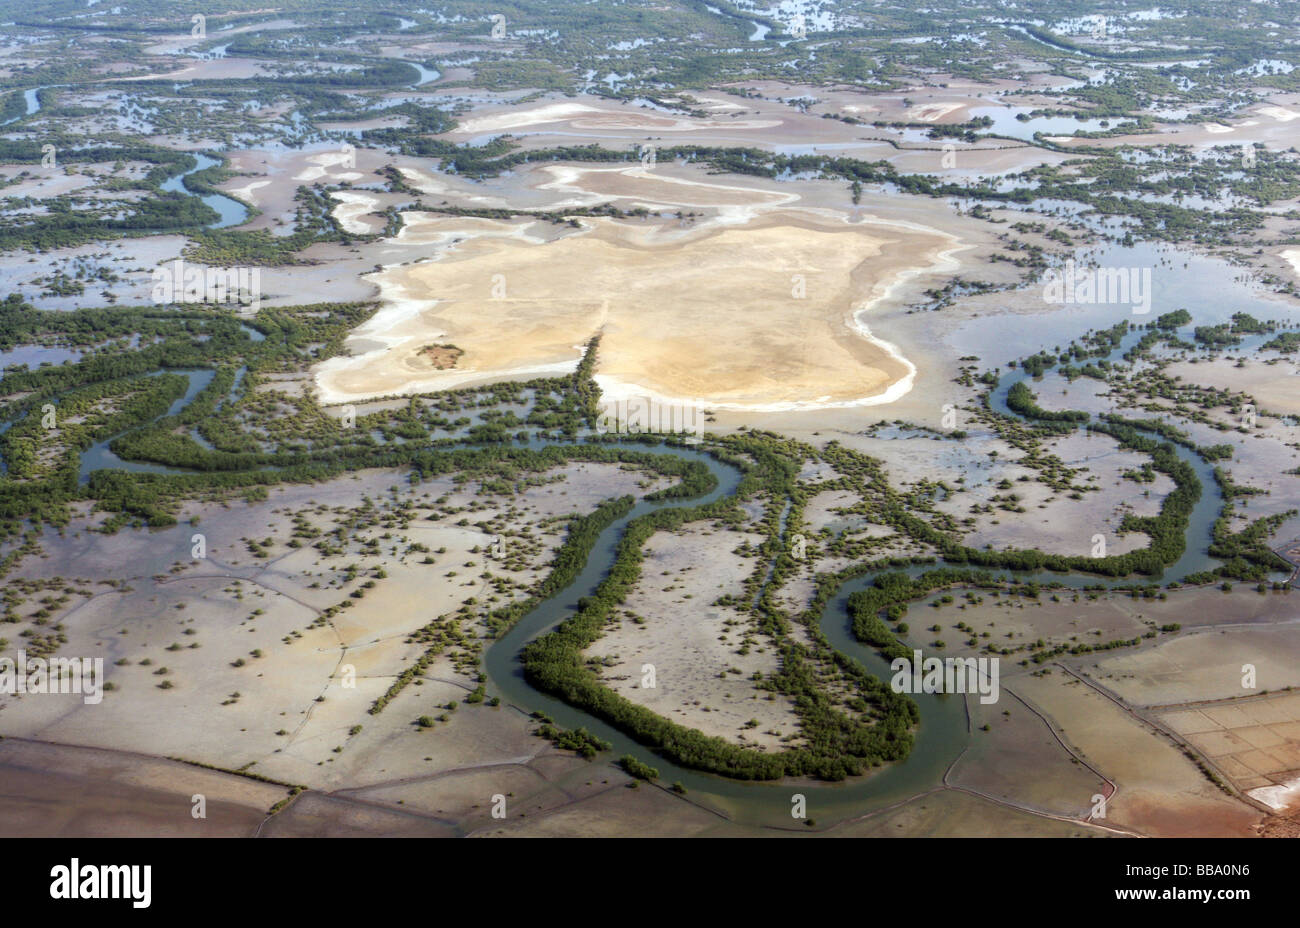 Aerial view of the Casamance River Delta near Ziguinchor, Senegal - Stock Image